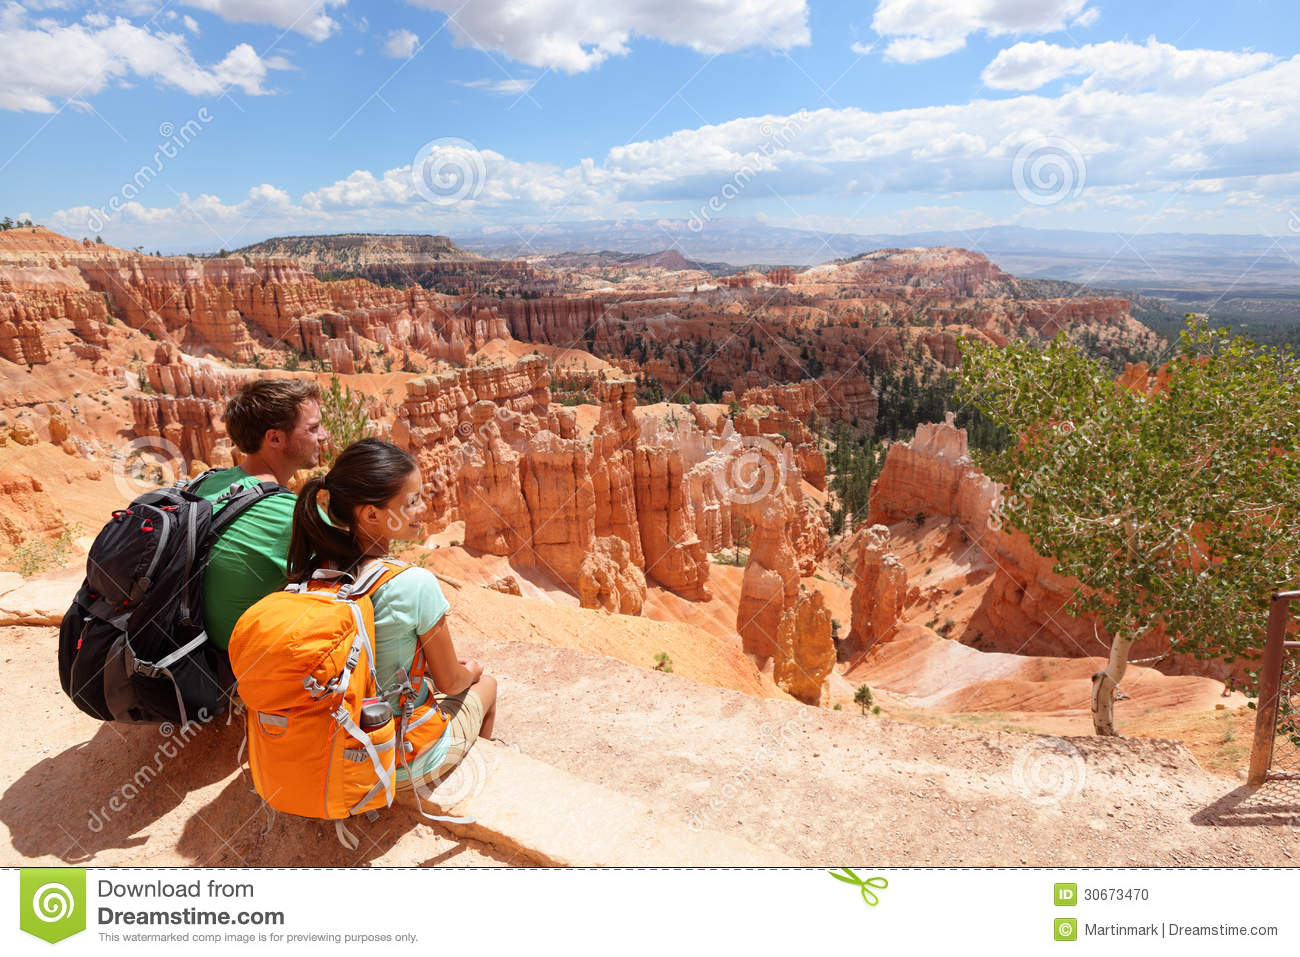 bryce canyon national park asian personals Amazing trip to antelope canyon, bryce canyon bryce canyon national park bryce canyon national park in southern utah does see all meetups from your asian.